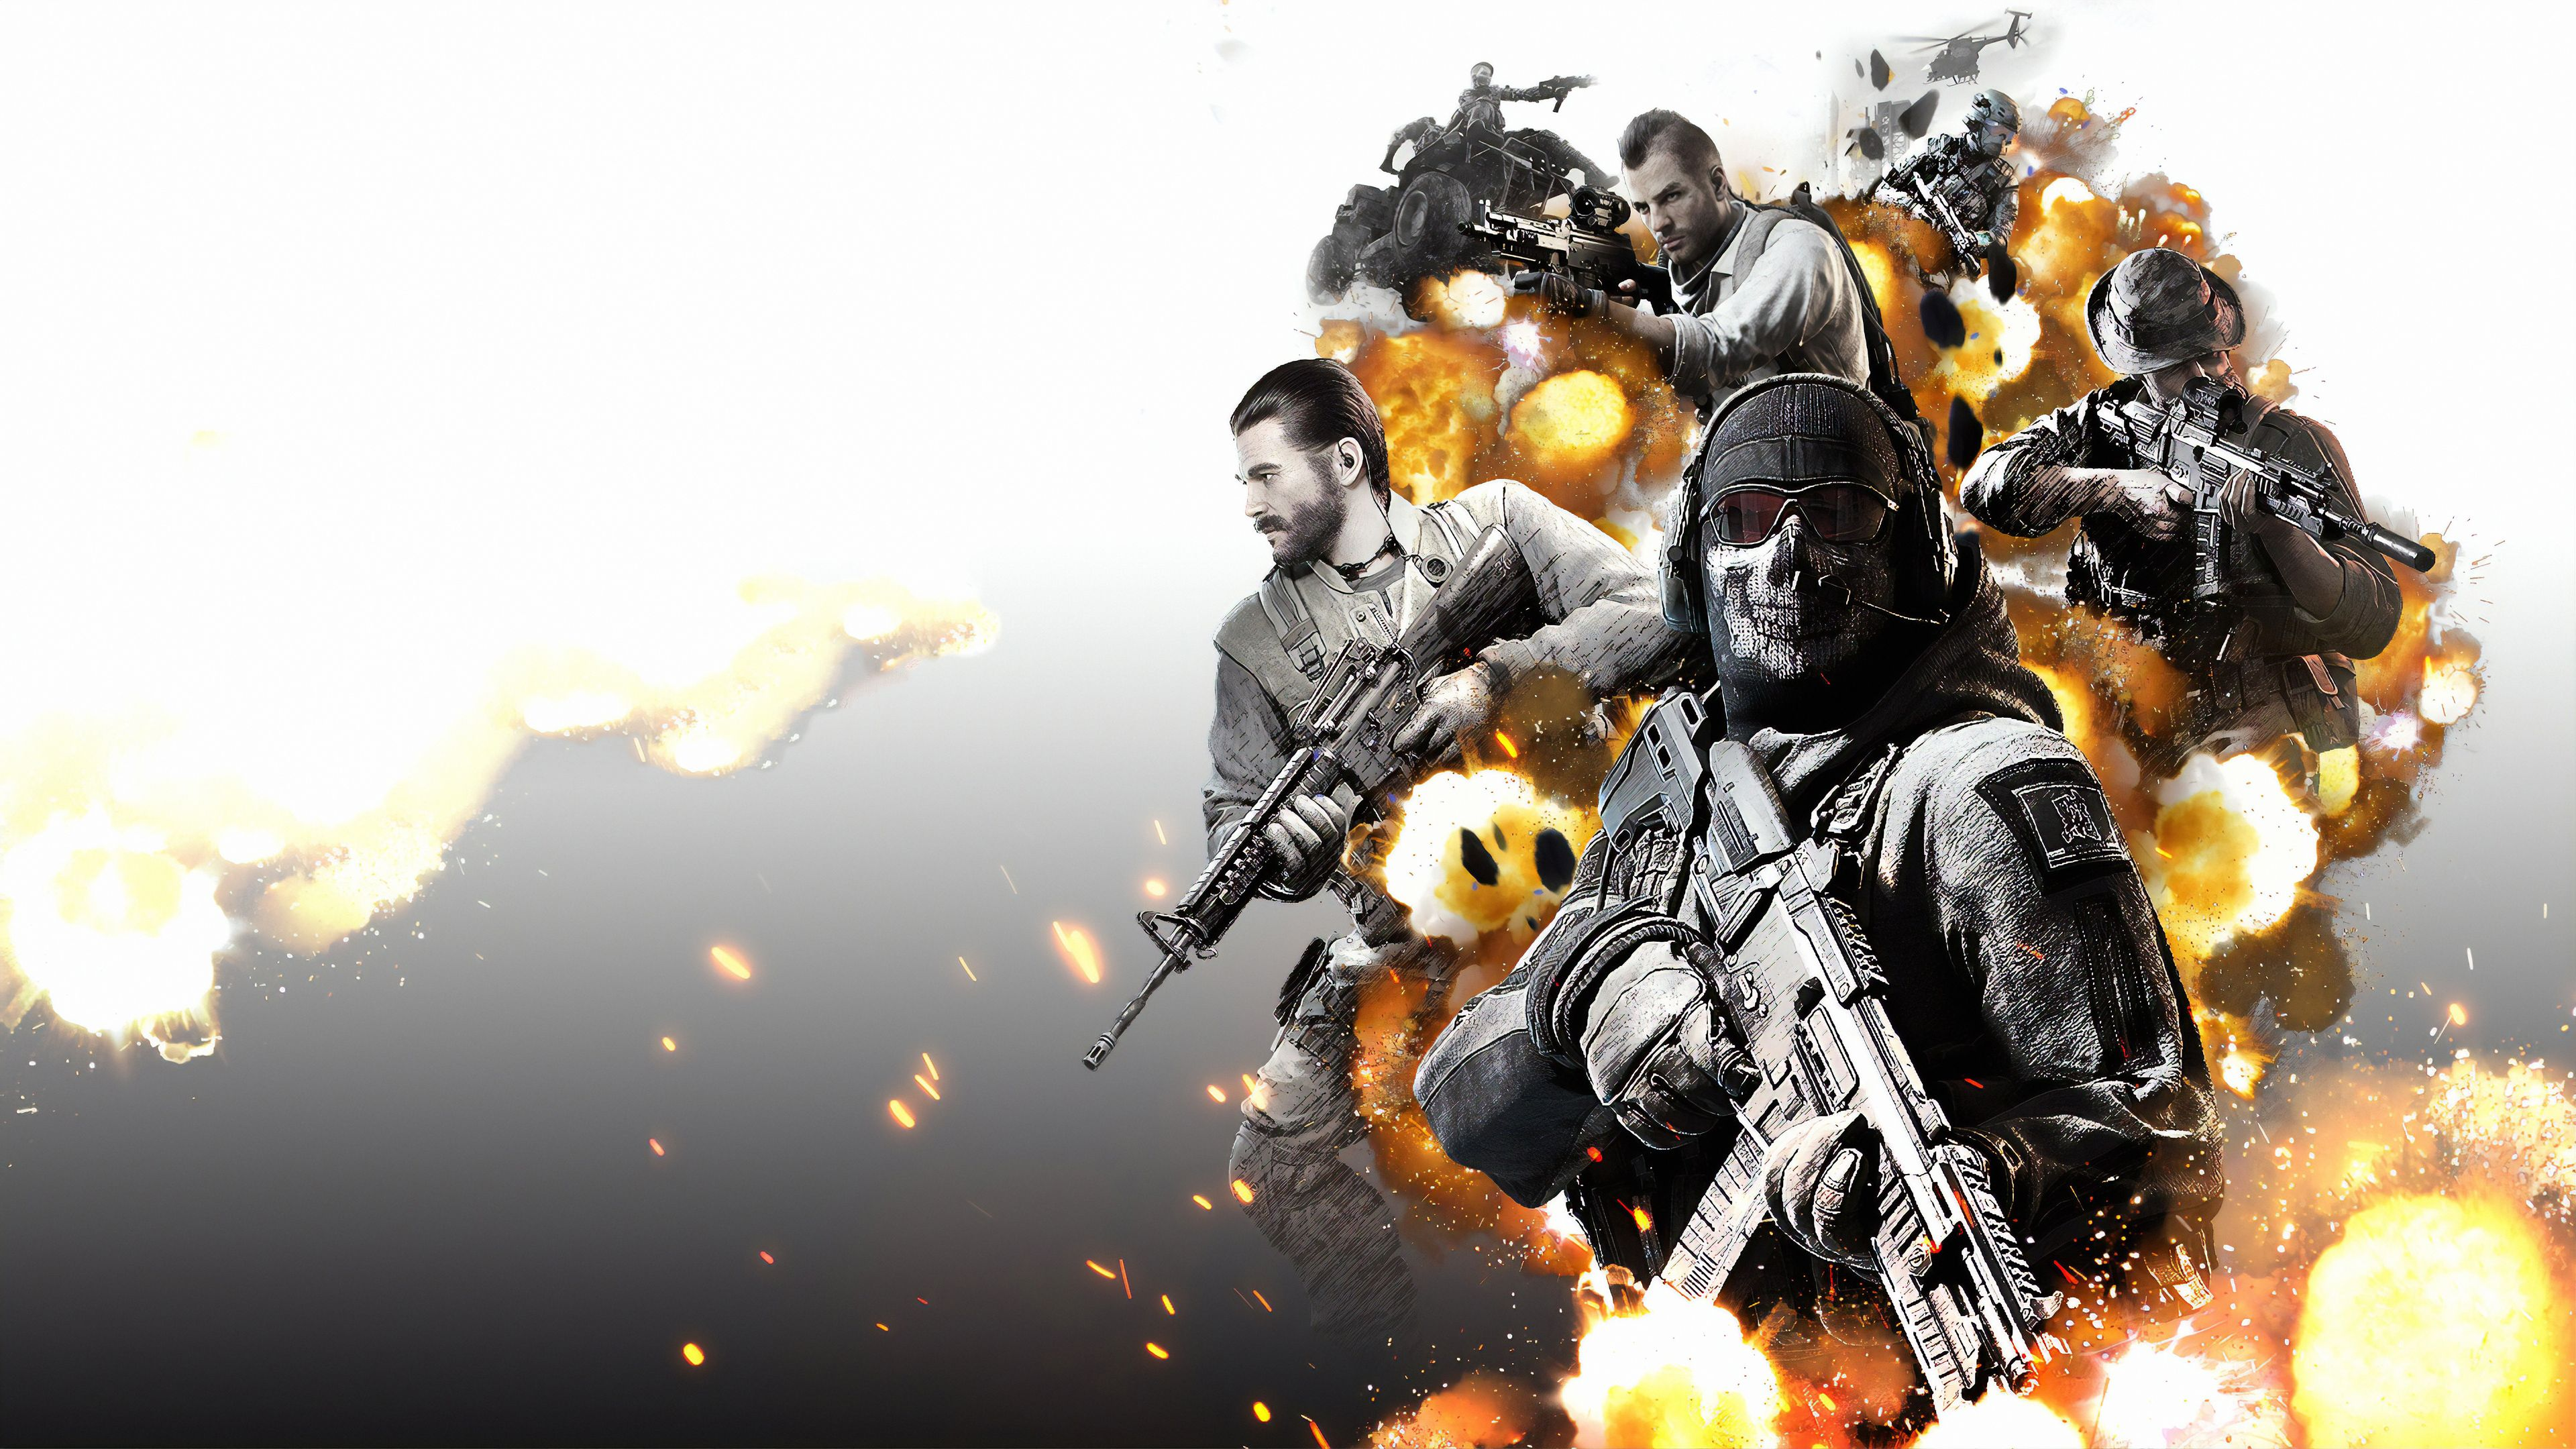 Call Of Duty Mobile Hd Wallpapers For Mobile Mobile Wallpaper Call Of Duty